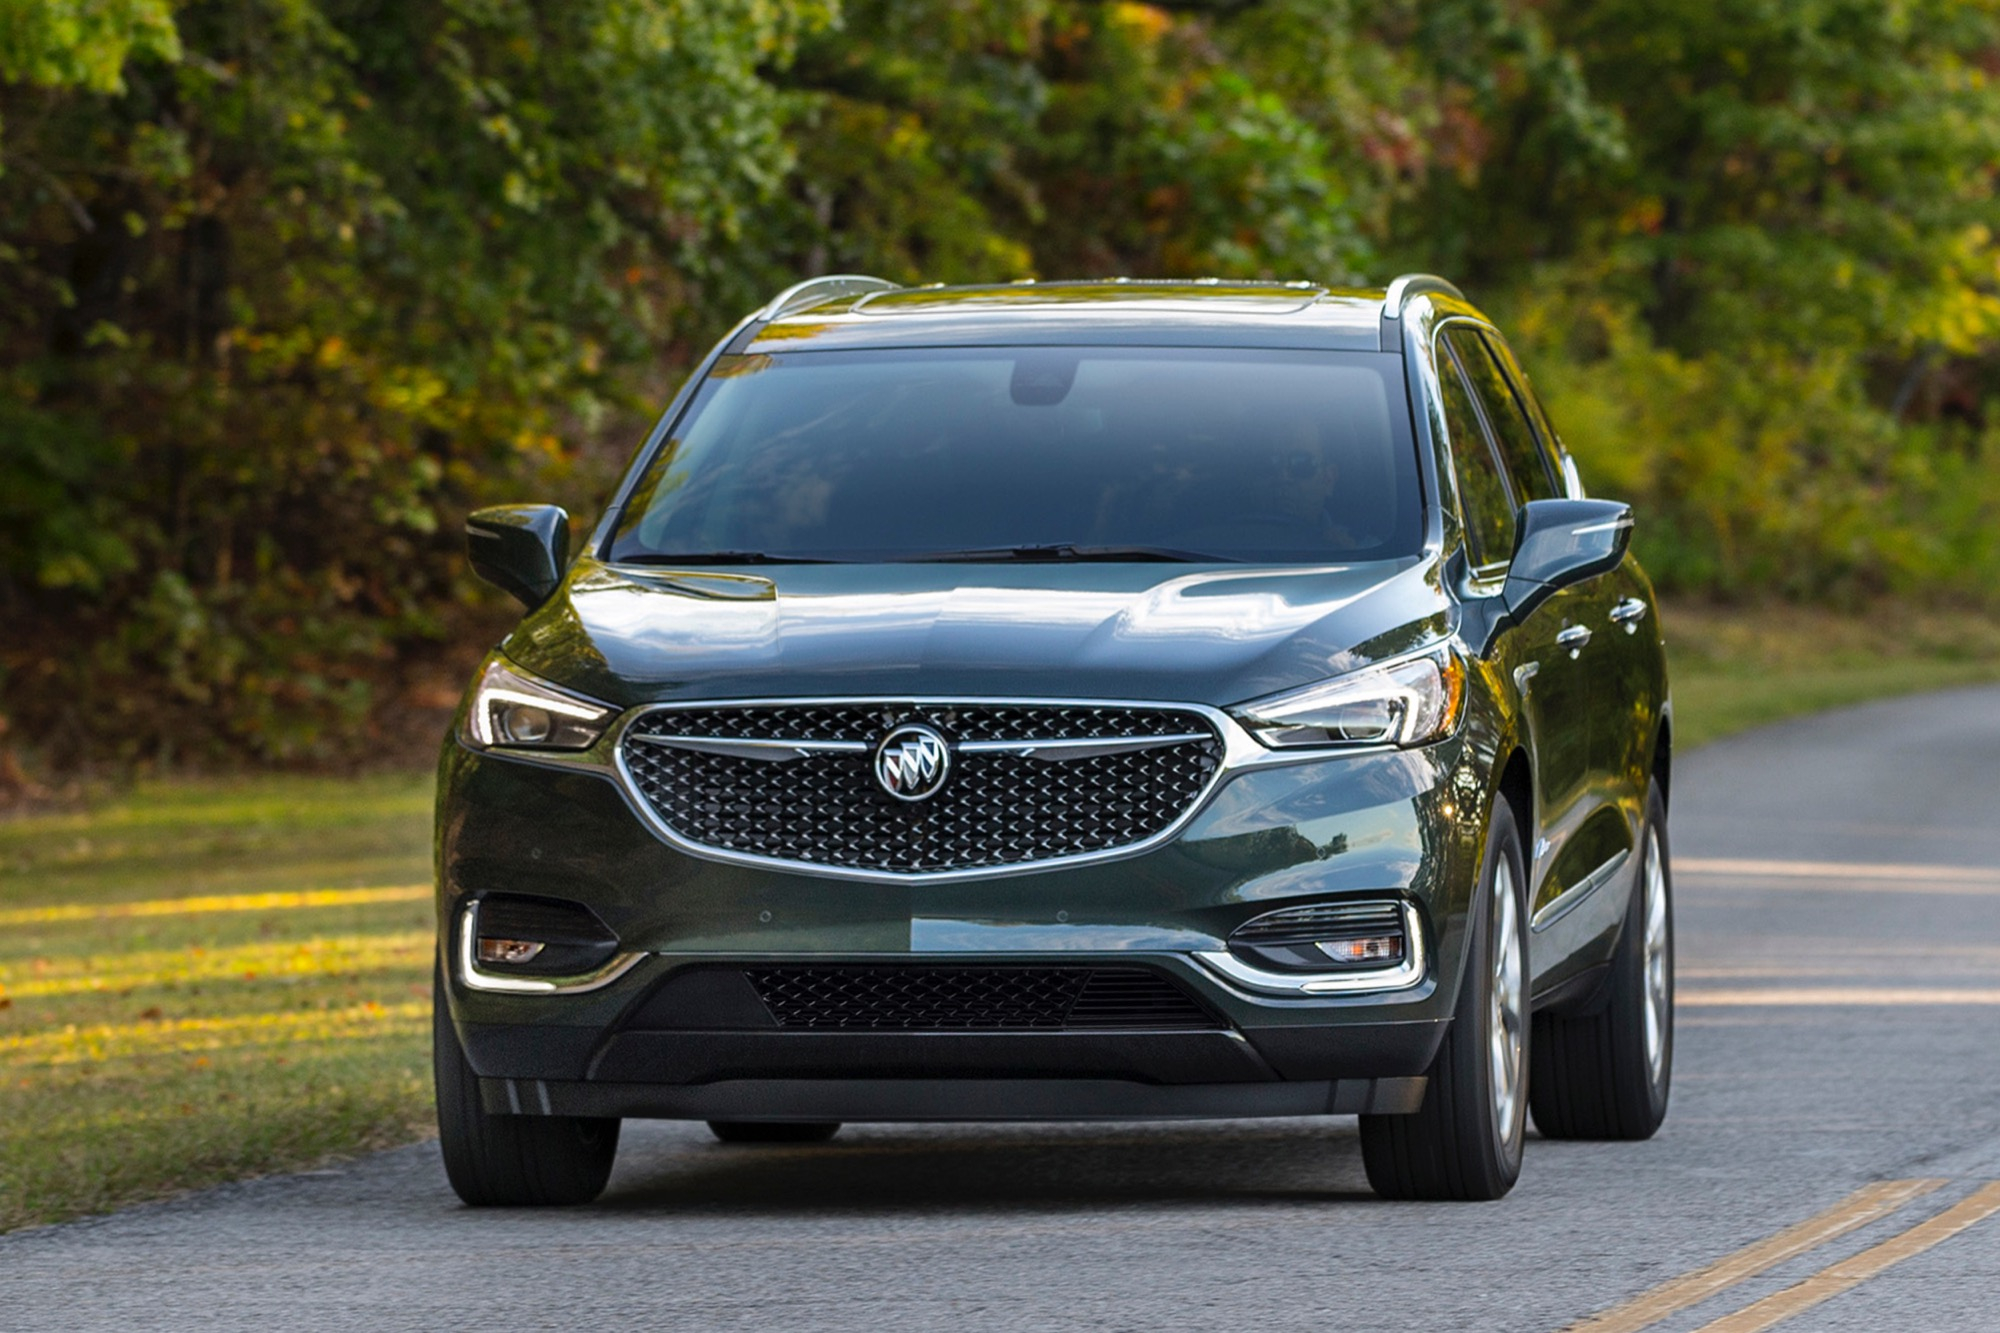 Buyers Don't Care That The Buick Enclave Doesn't Have The 2022 Buick Enclave Oil Capacity, Owner's Manual, Problems